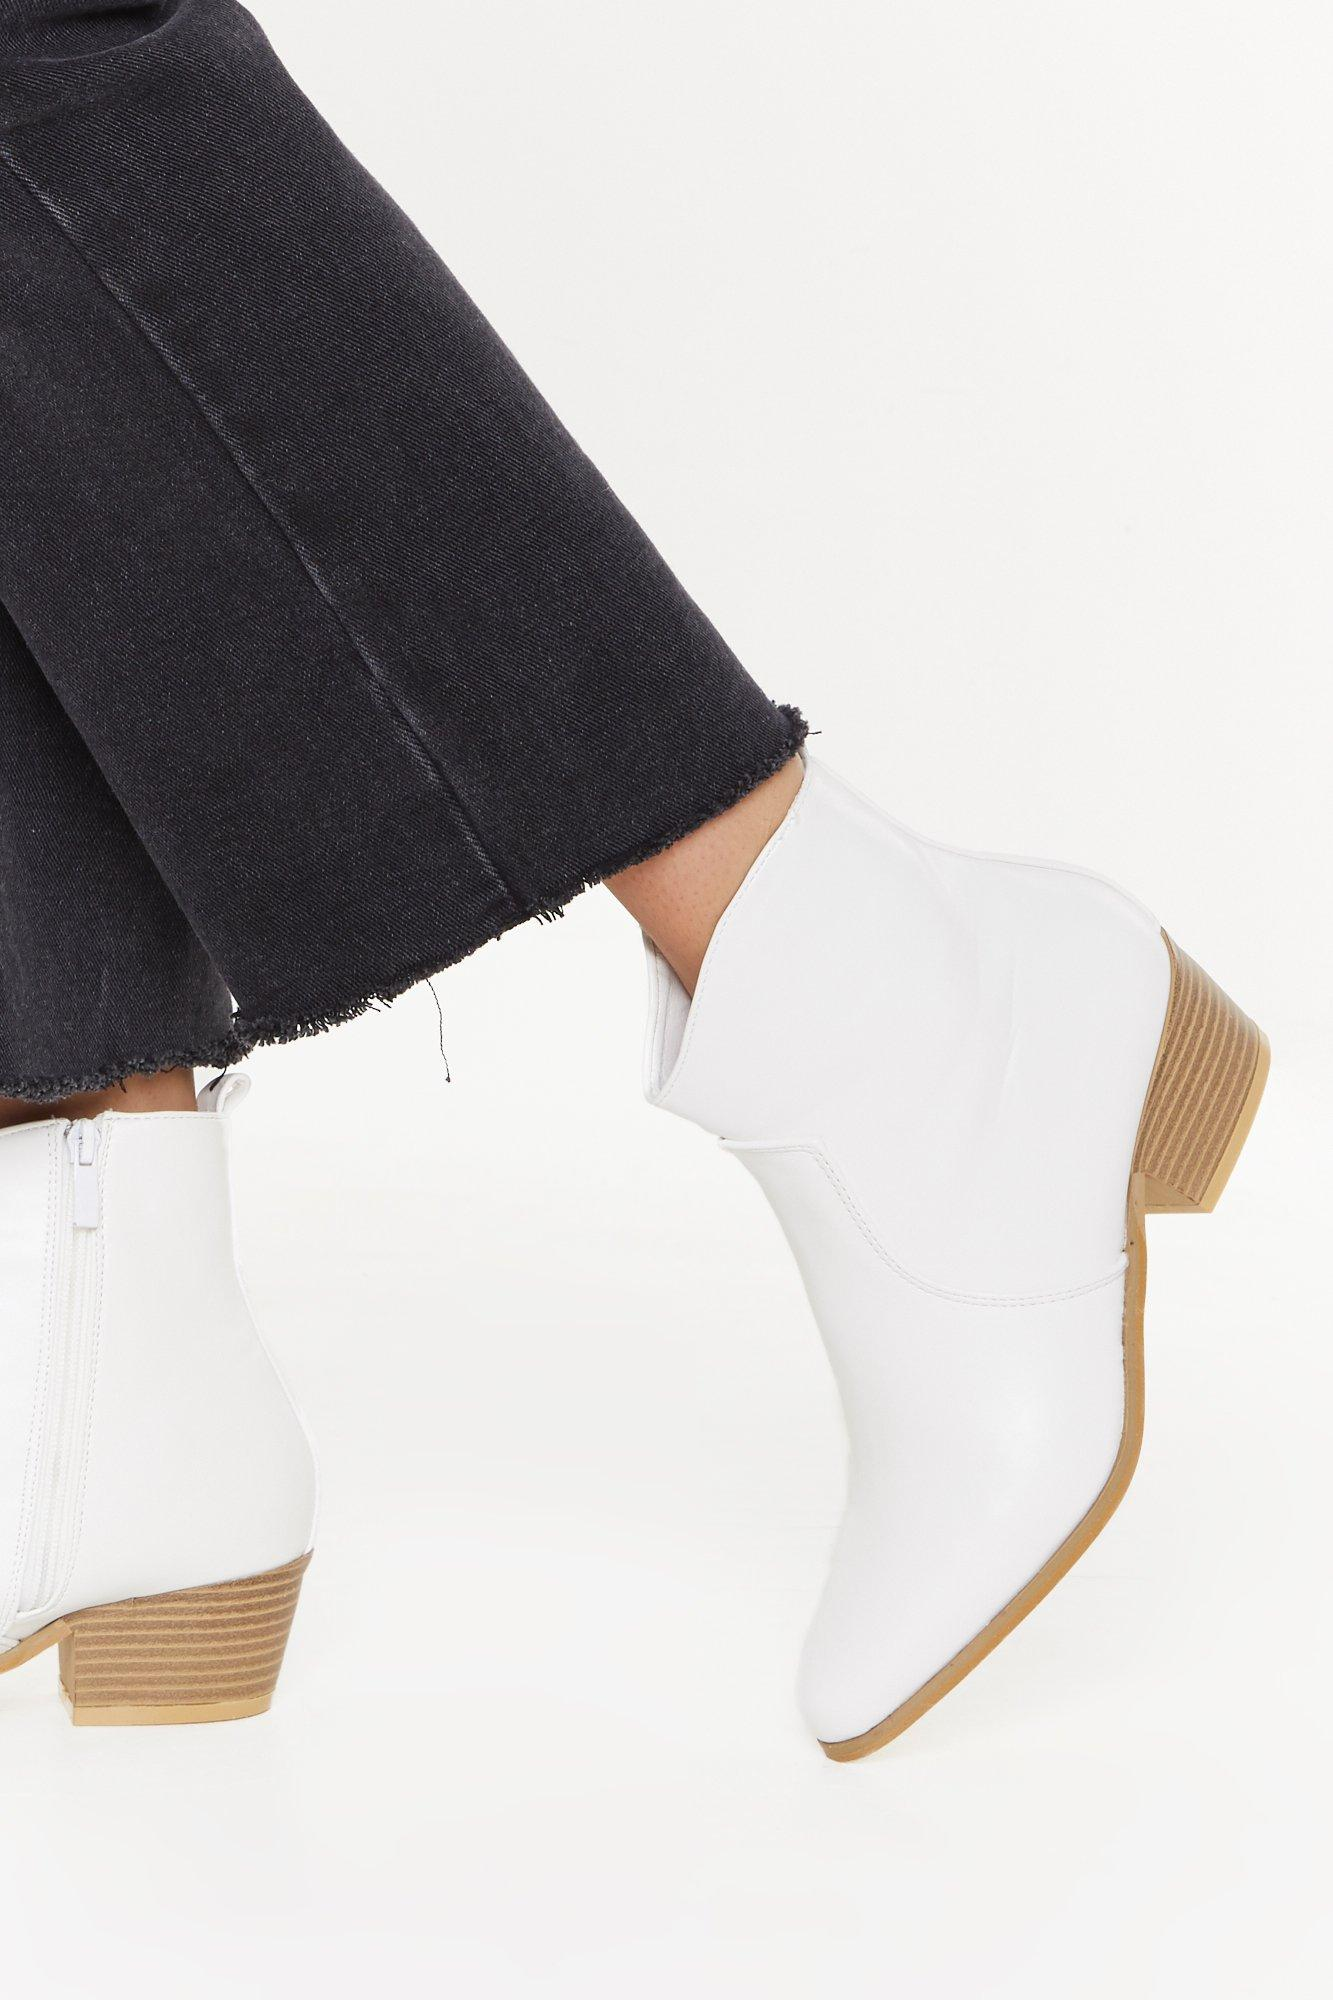 Making a Point Faux Leather Western Boots | Nasty Gal